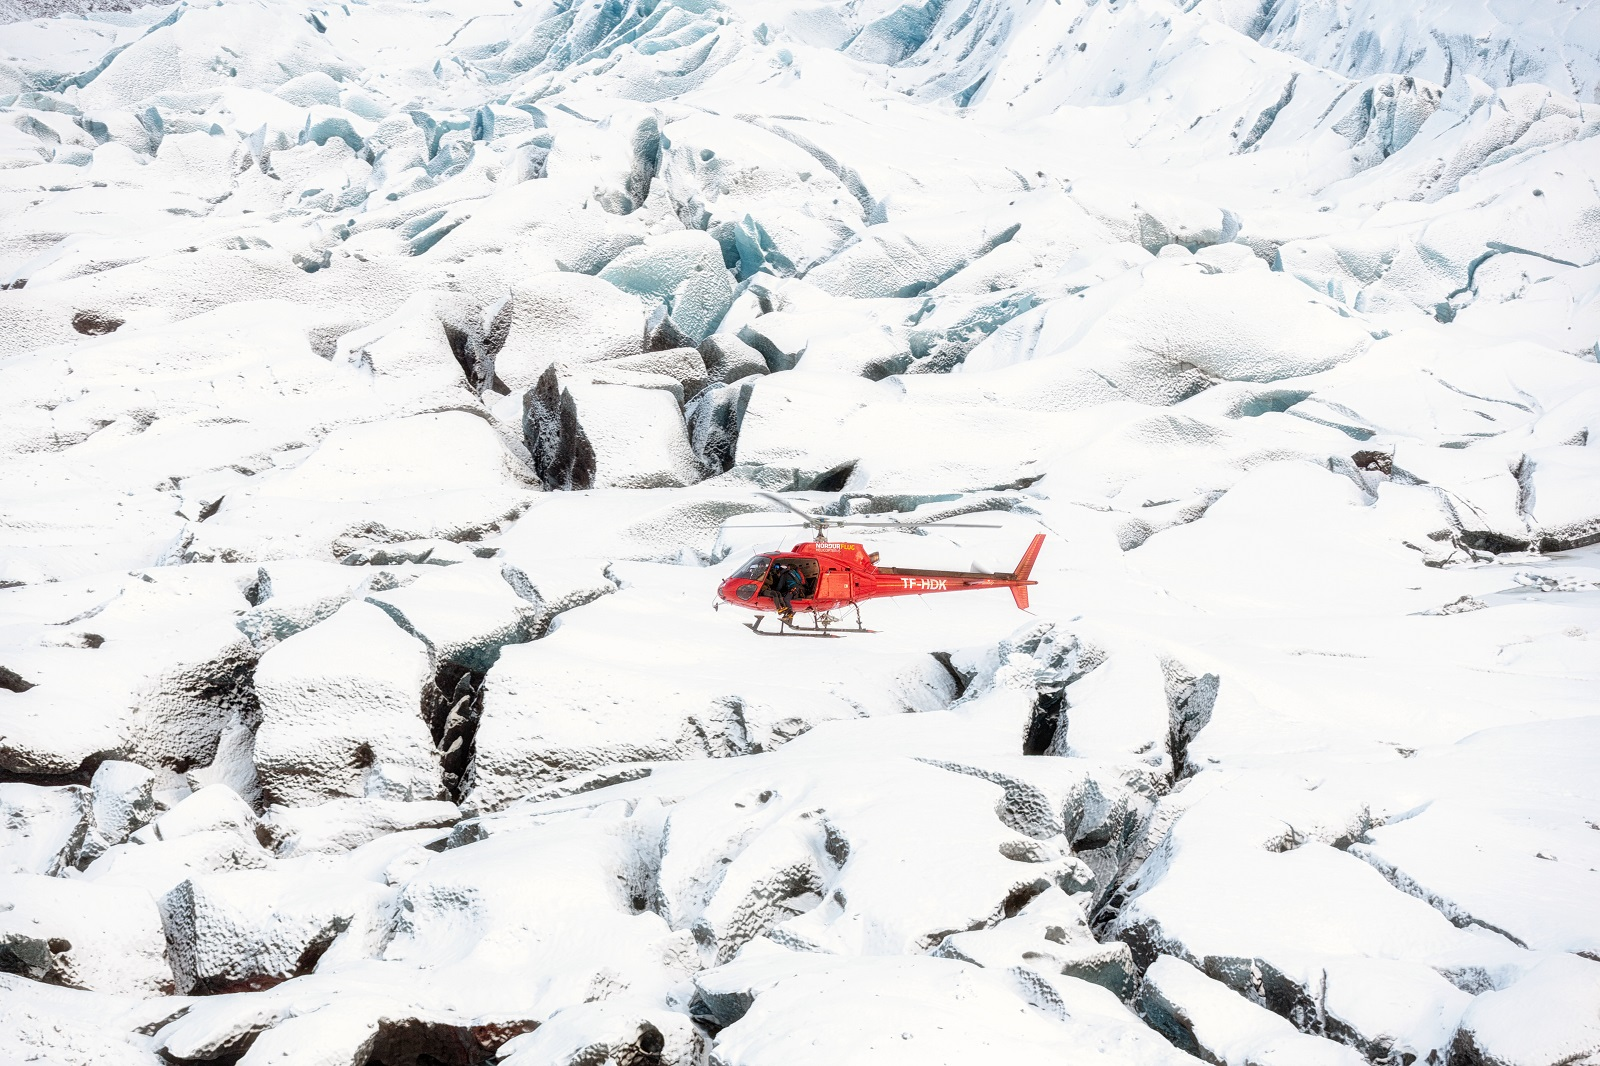 Iceland - Helicopter in Iceland for National Geographic's RUNNING WILD WITH BEAR GRYLLS. (National Geographic/Ben Simms)